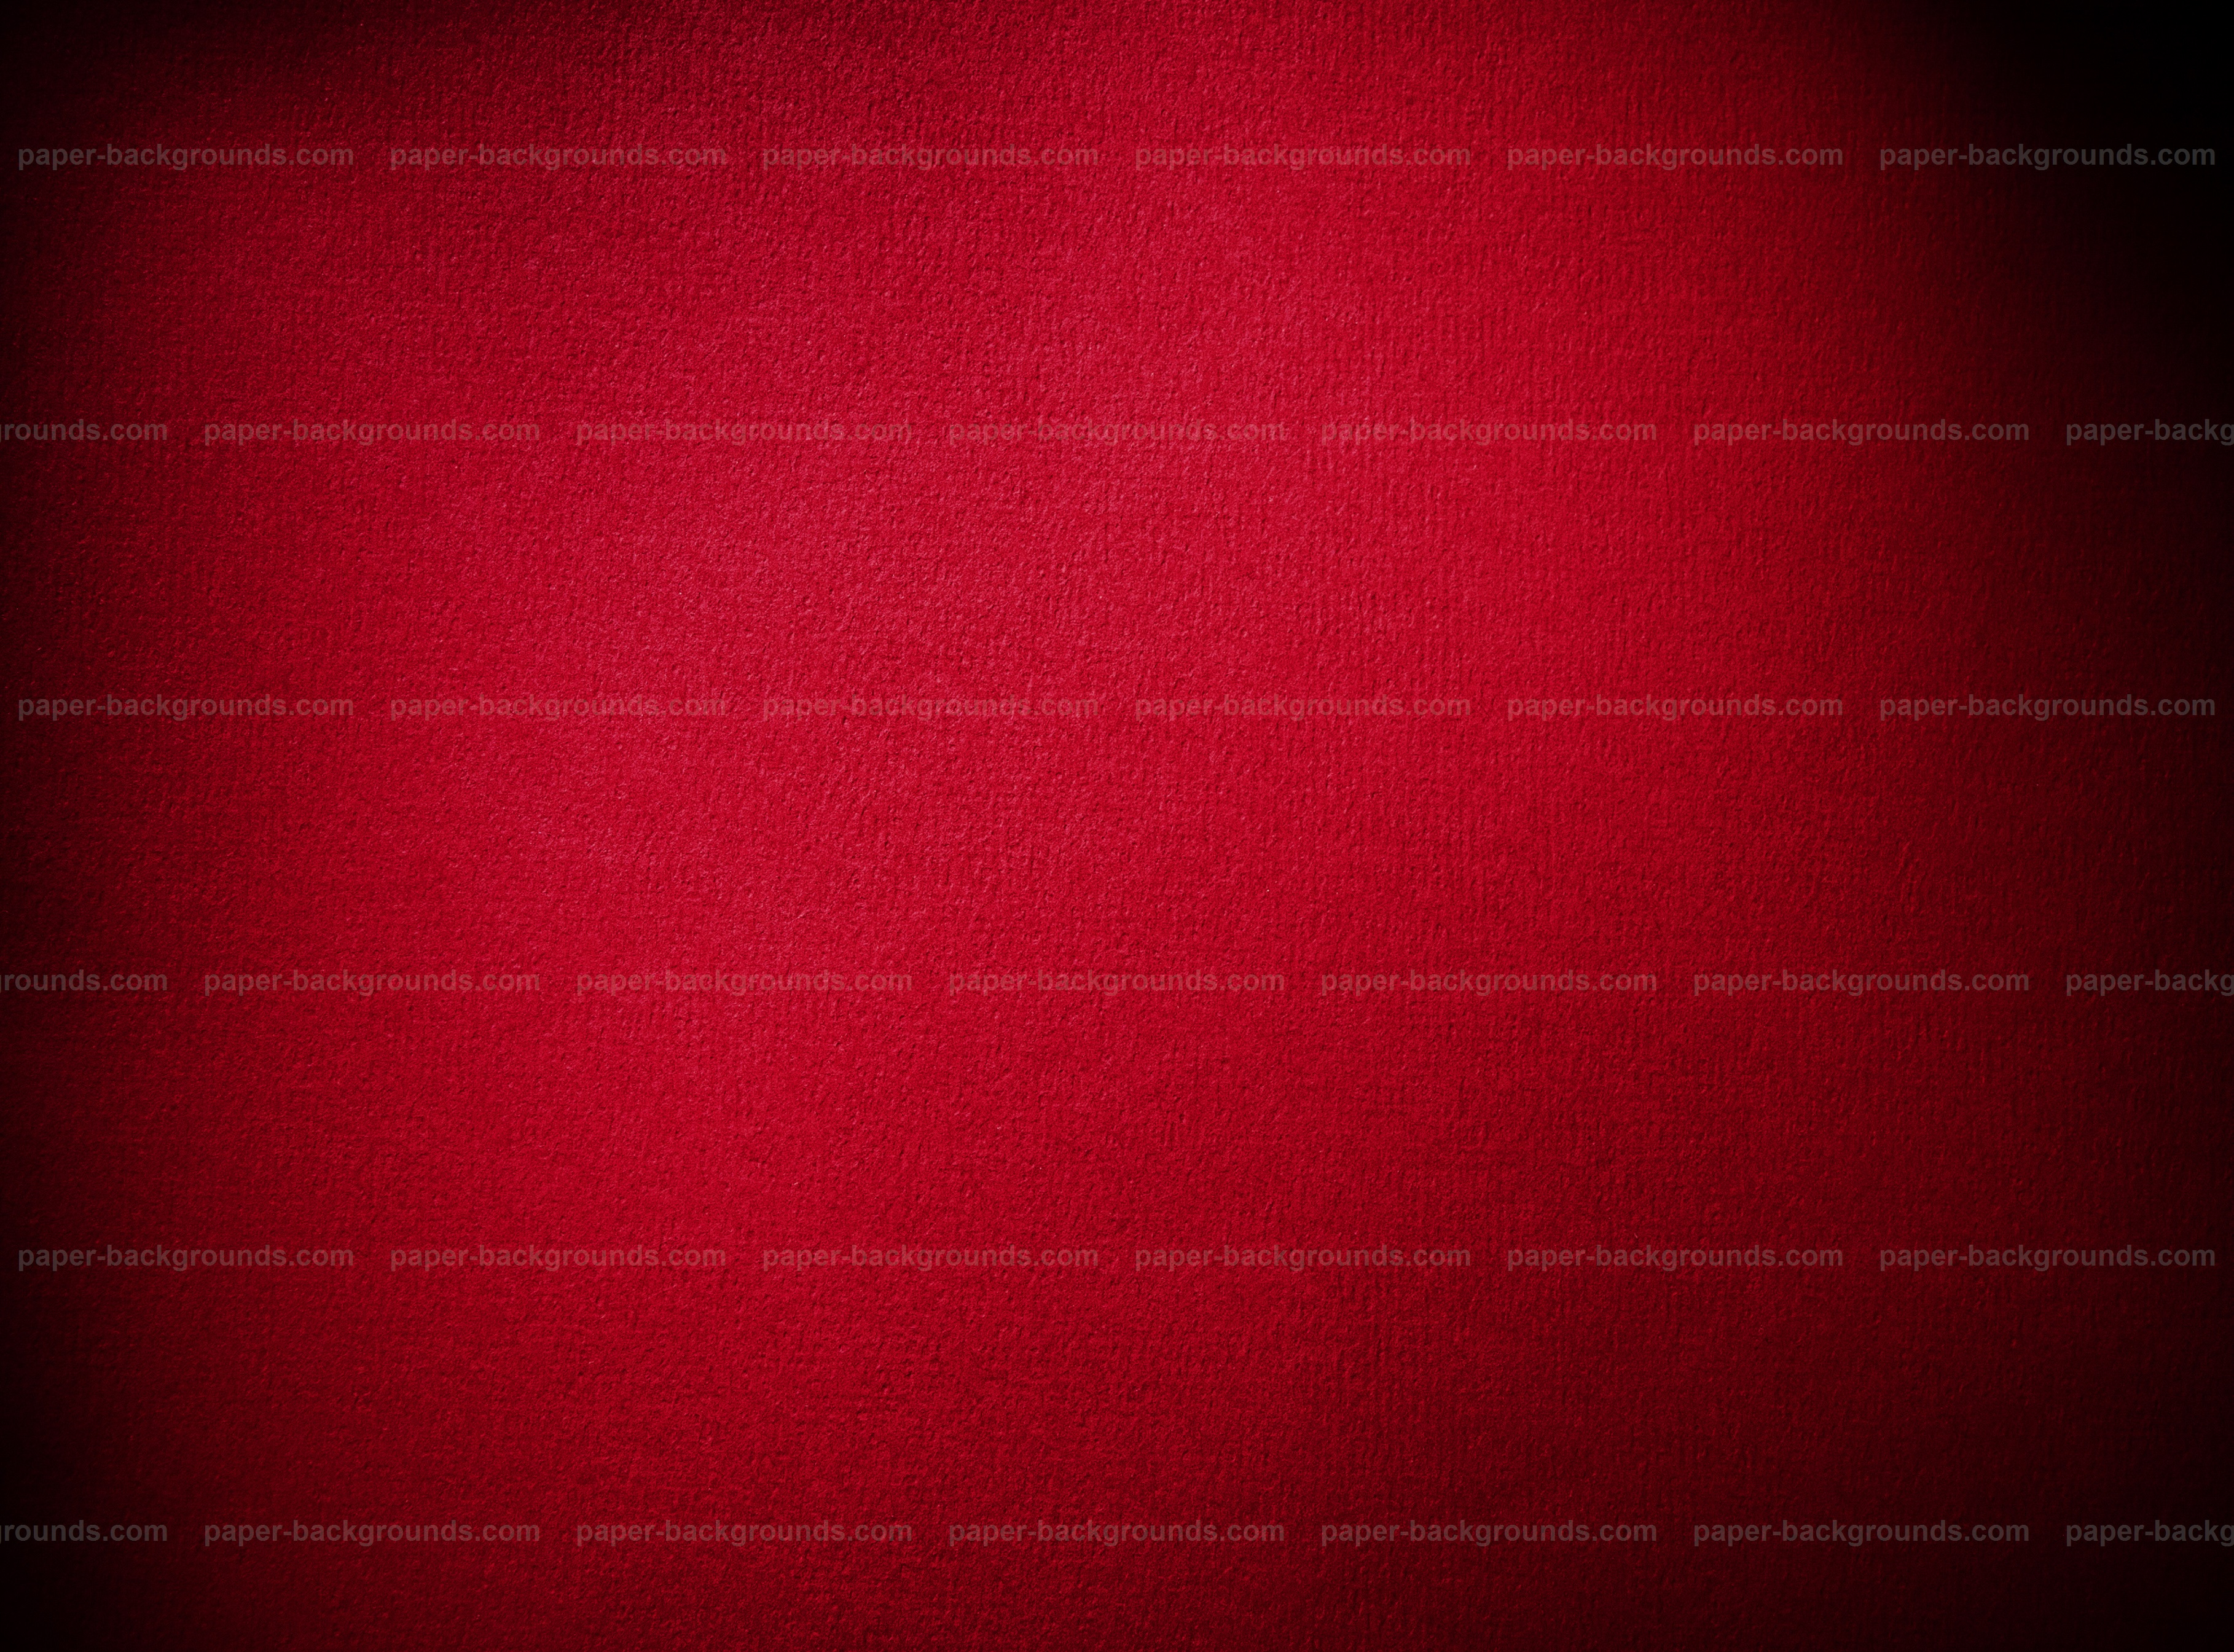 deep red paper background texture deep red paper background texture 3636x2689